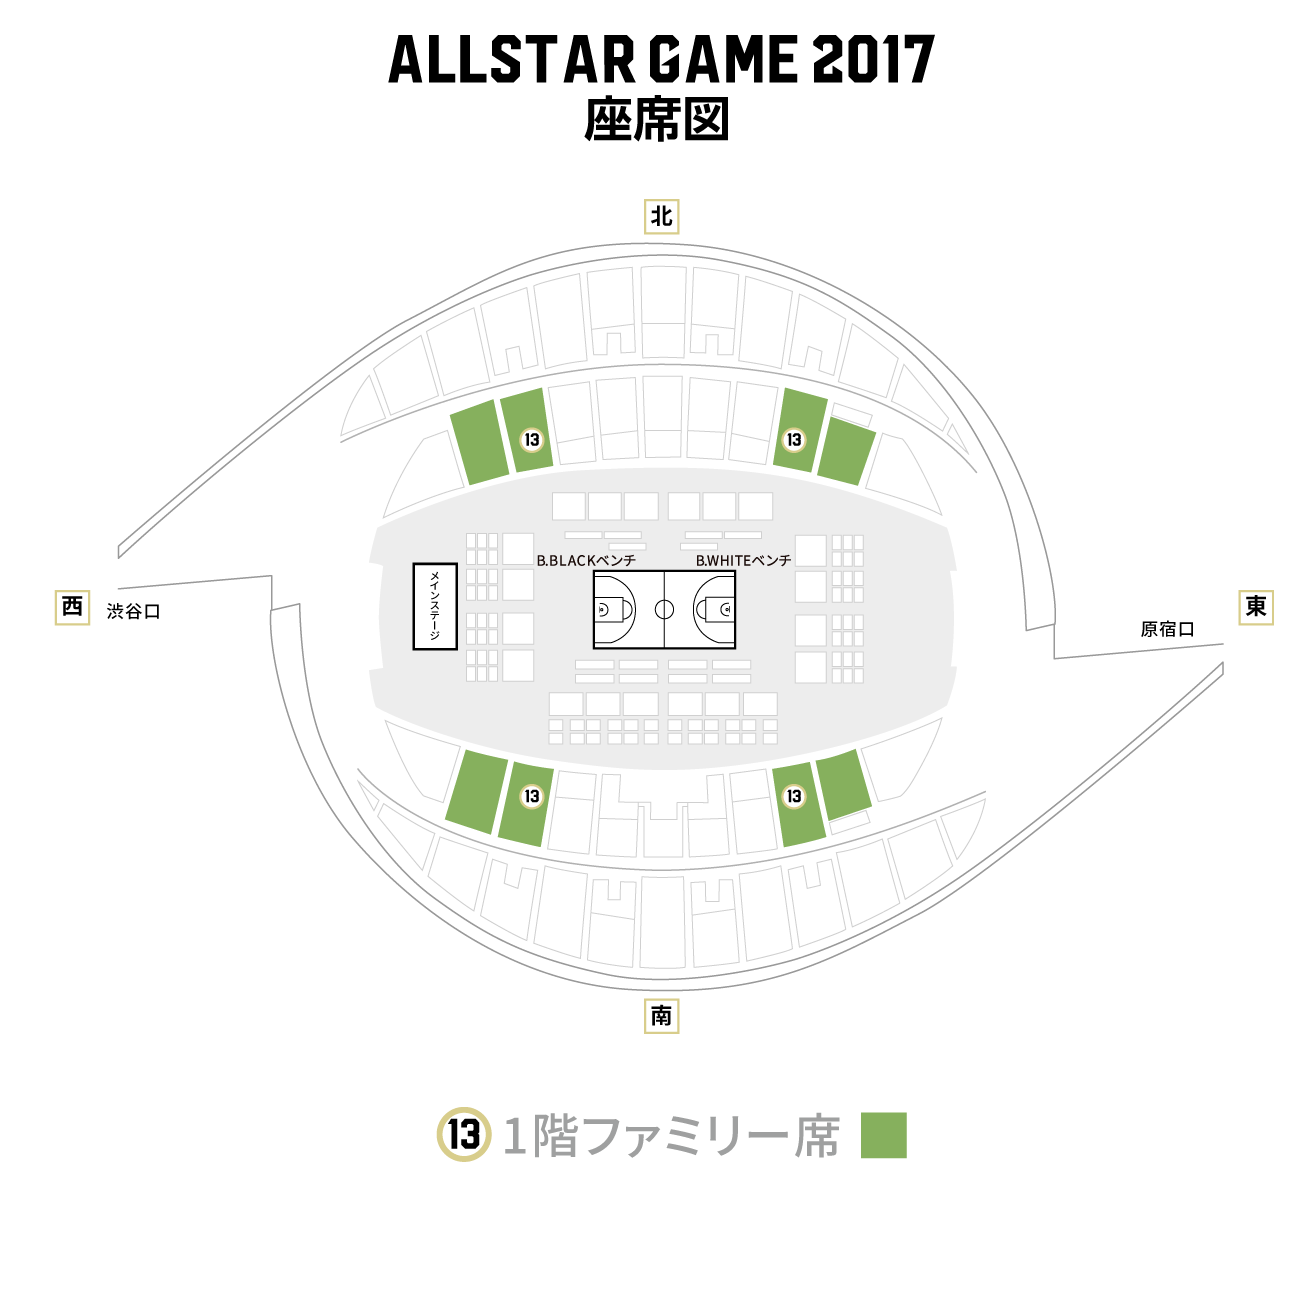 seatview_seat_13.png